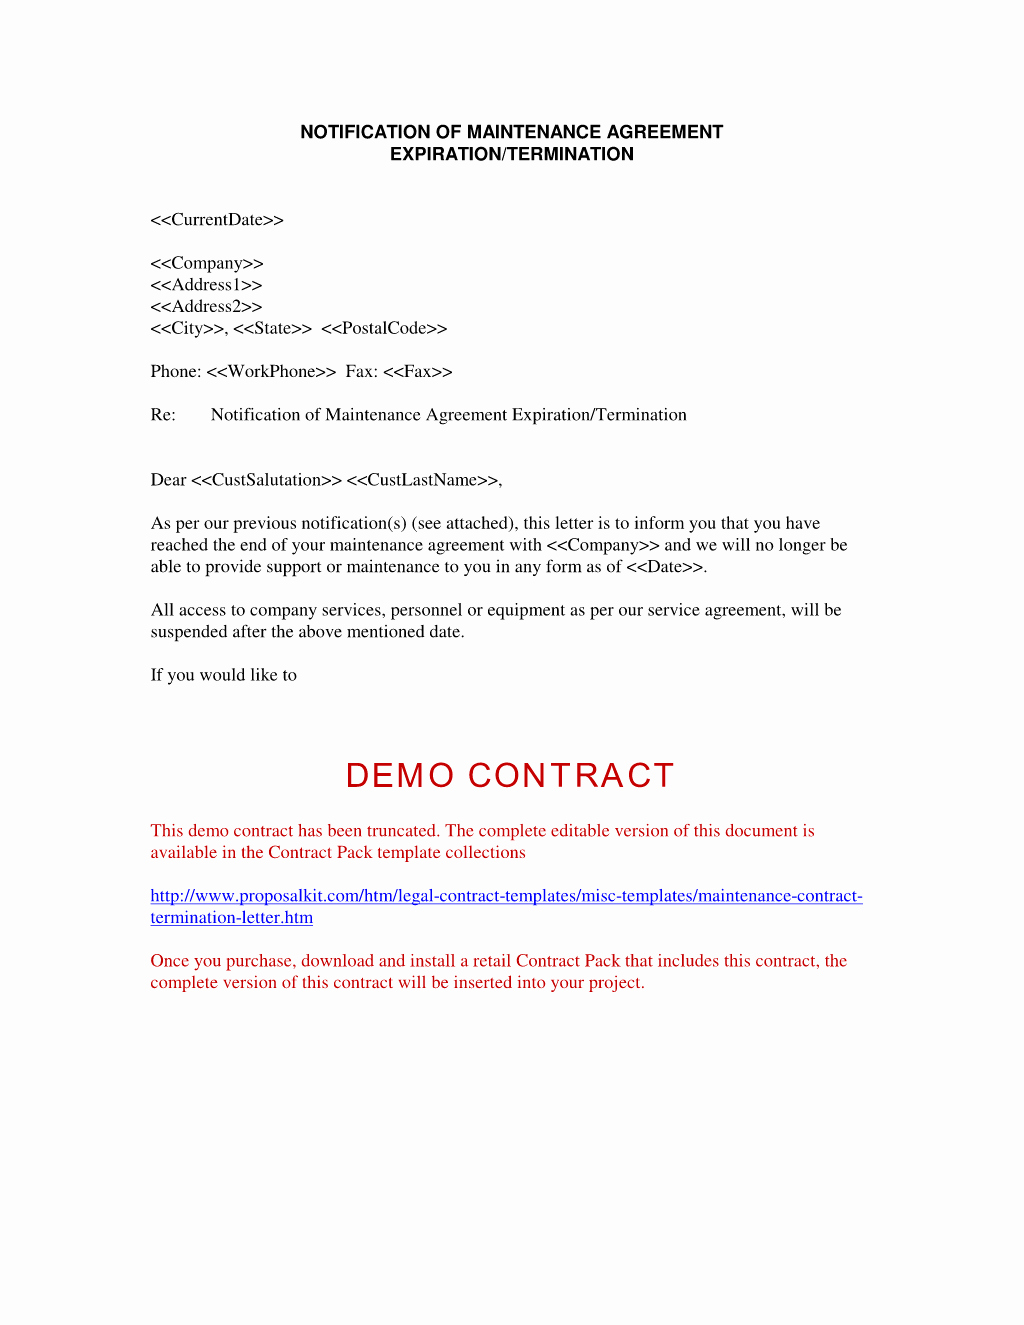 Contract Termination Letter Template Elegant Agreement Termination Letter